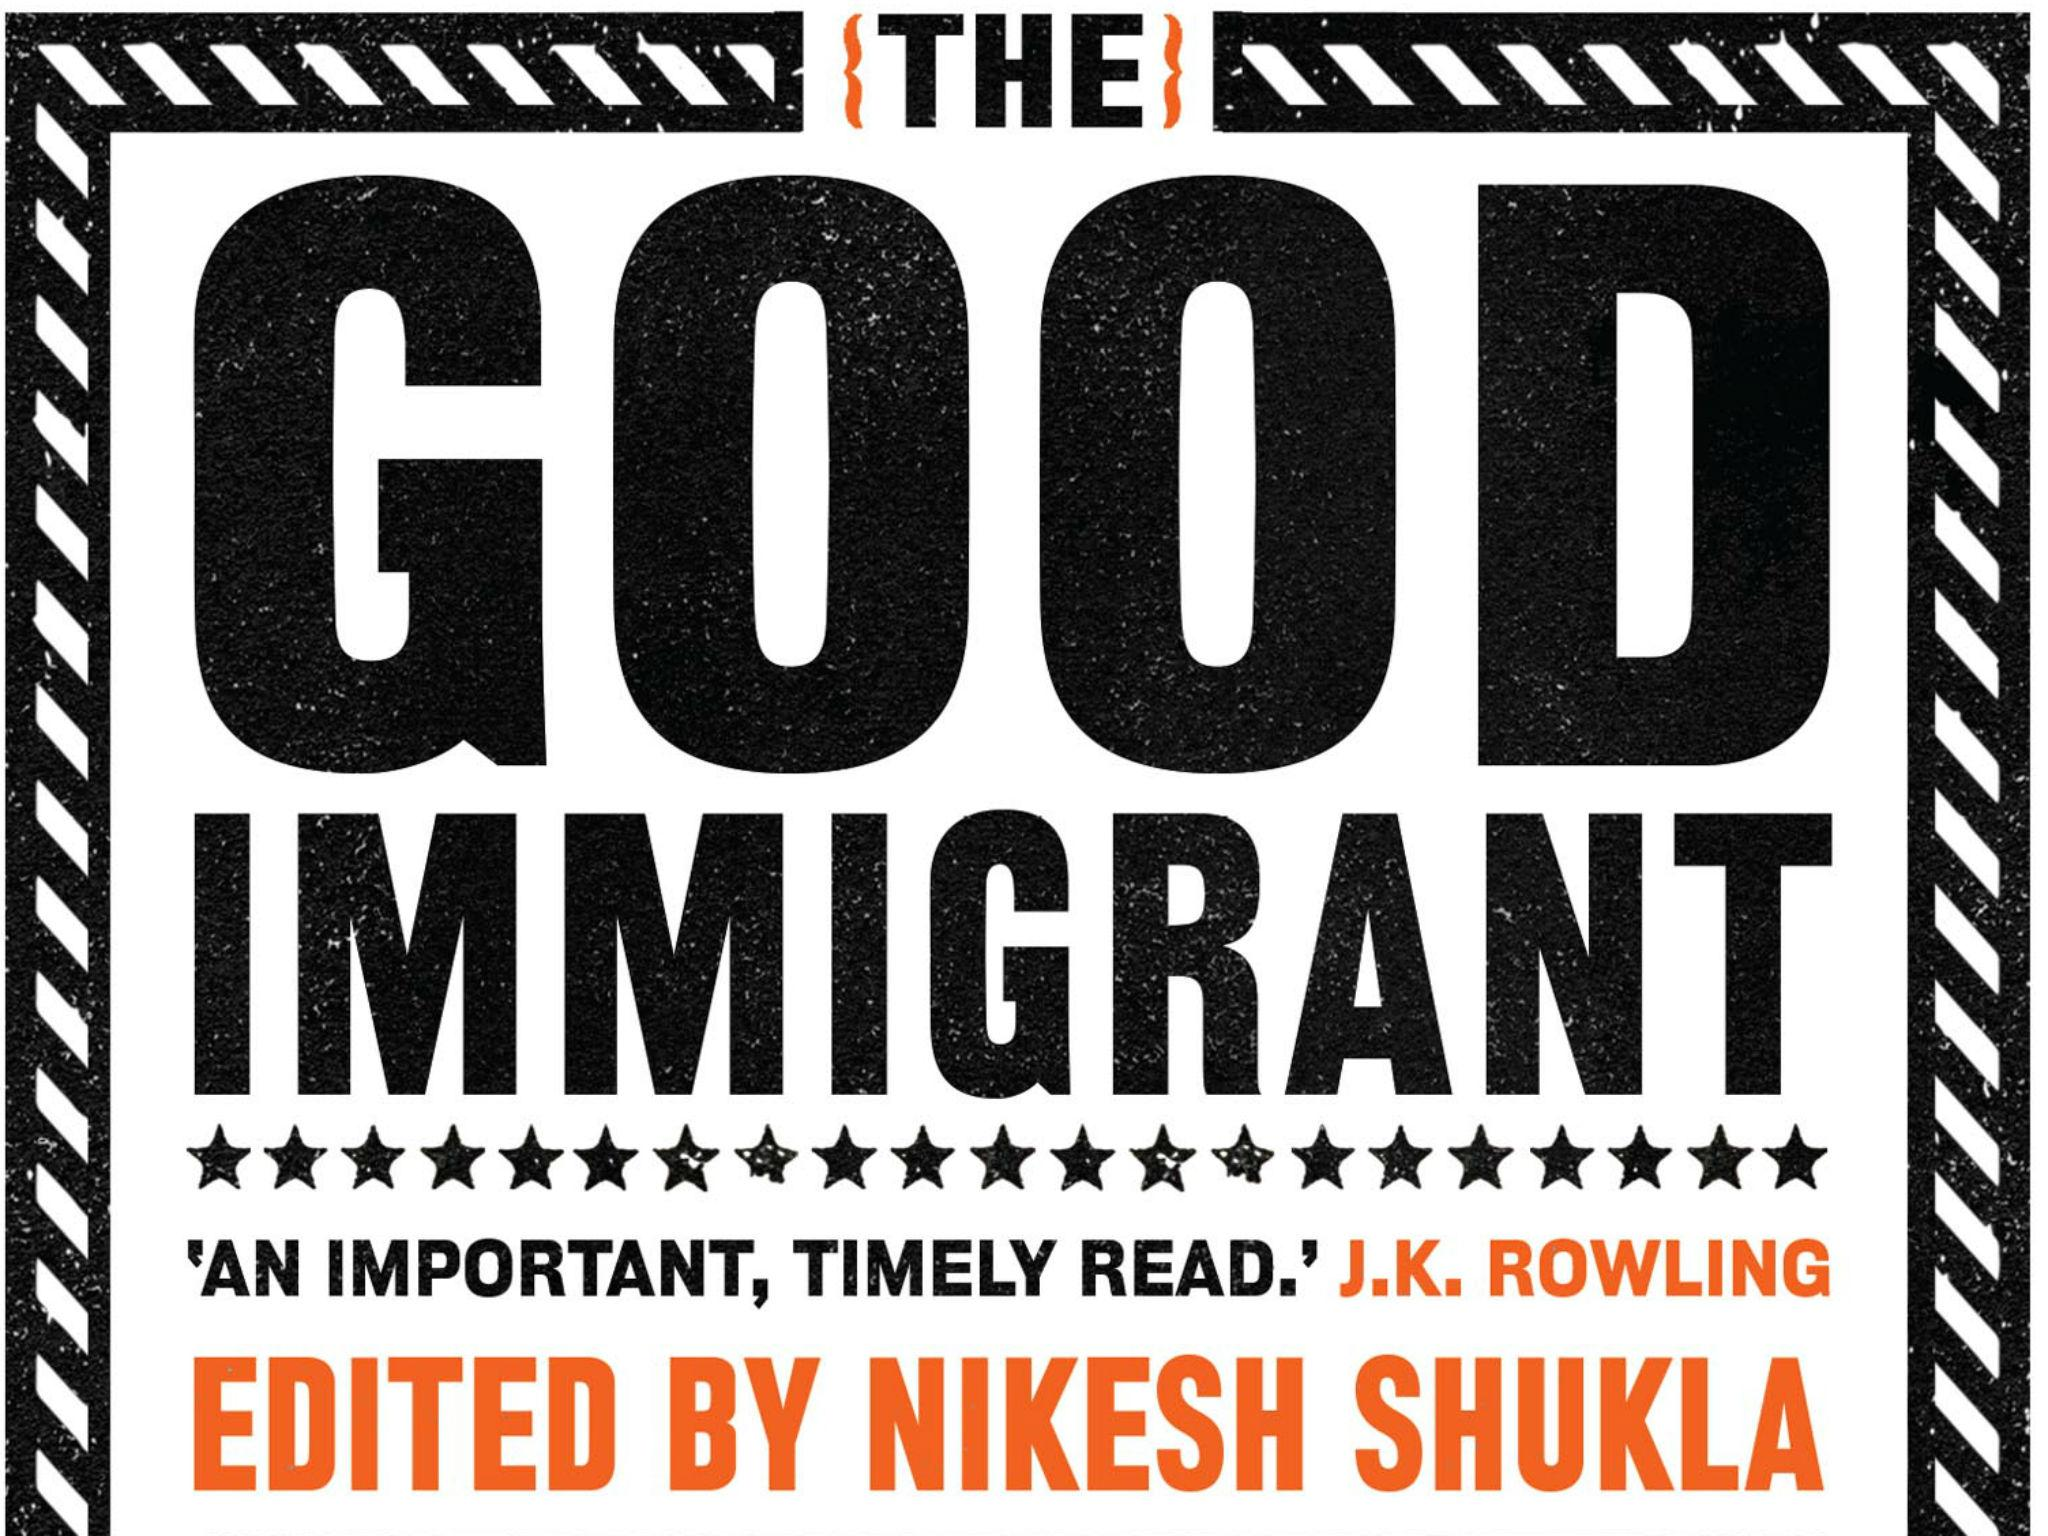 the good immigrant edited by nikesh shukla review i d push a the good immigrant edited by nikesh shukla review i d push a copy of this through the letter box of every front door in britain the